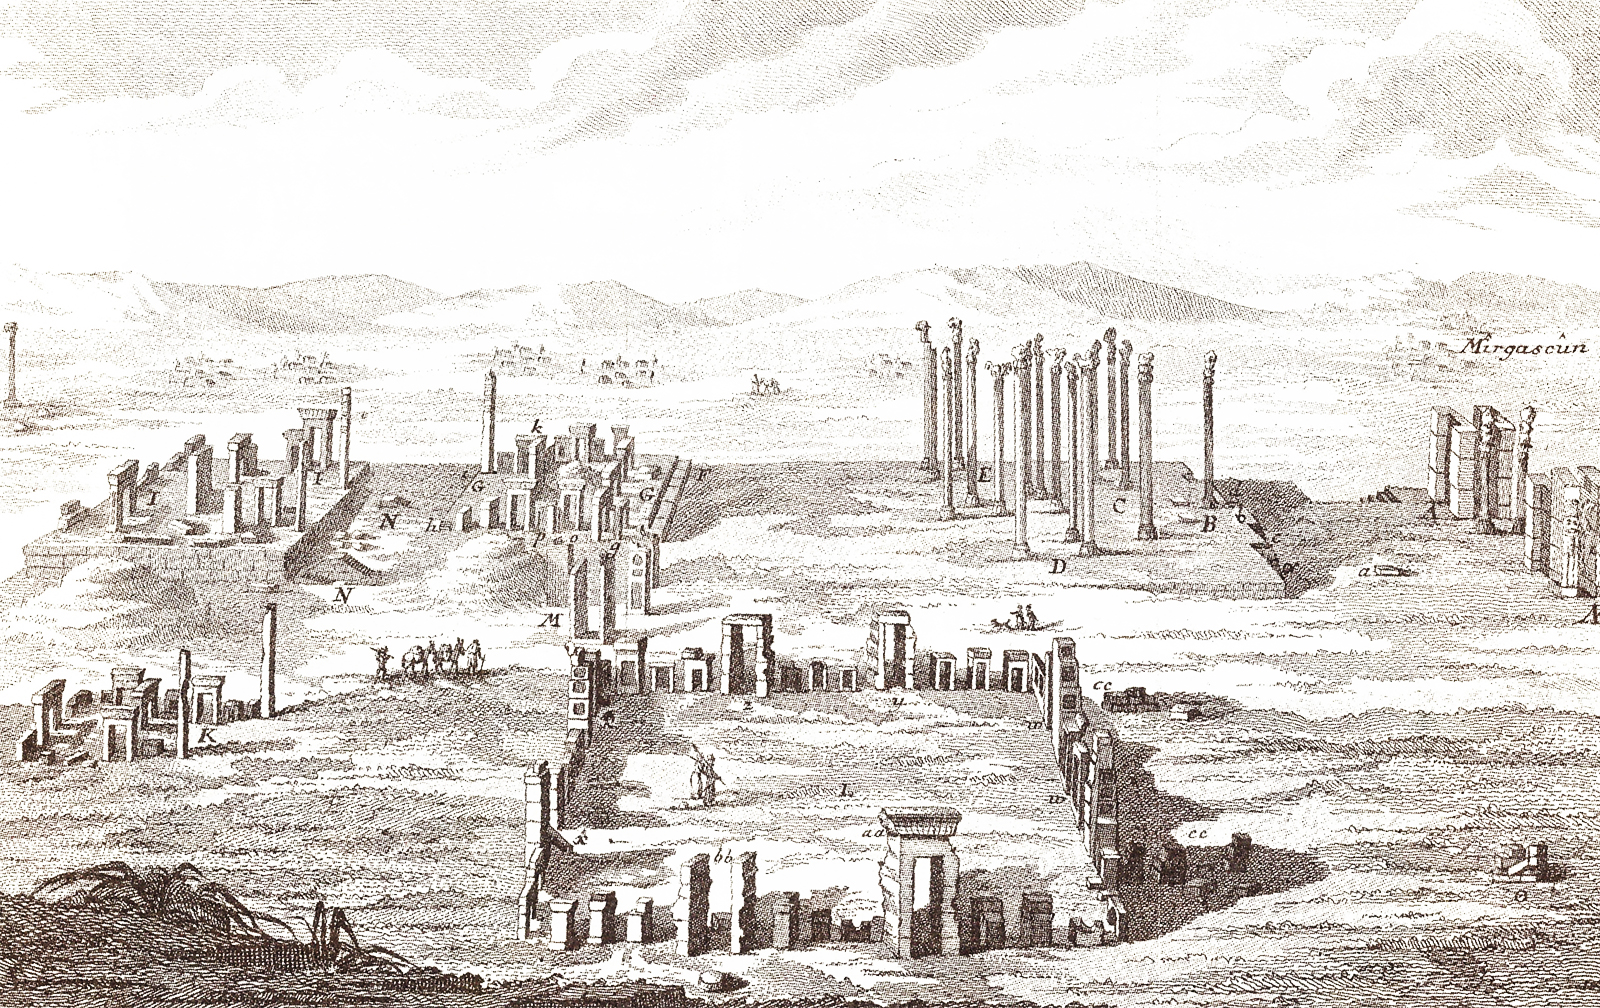 Views of the ruins of Persepolis